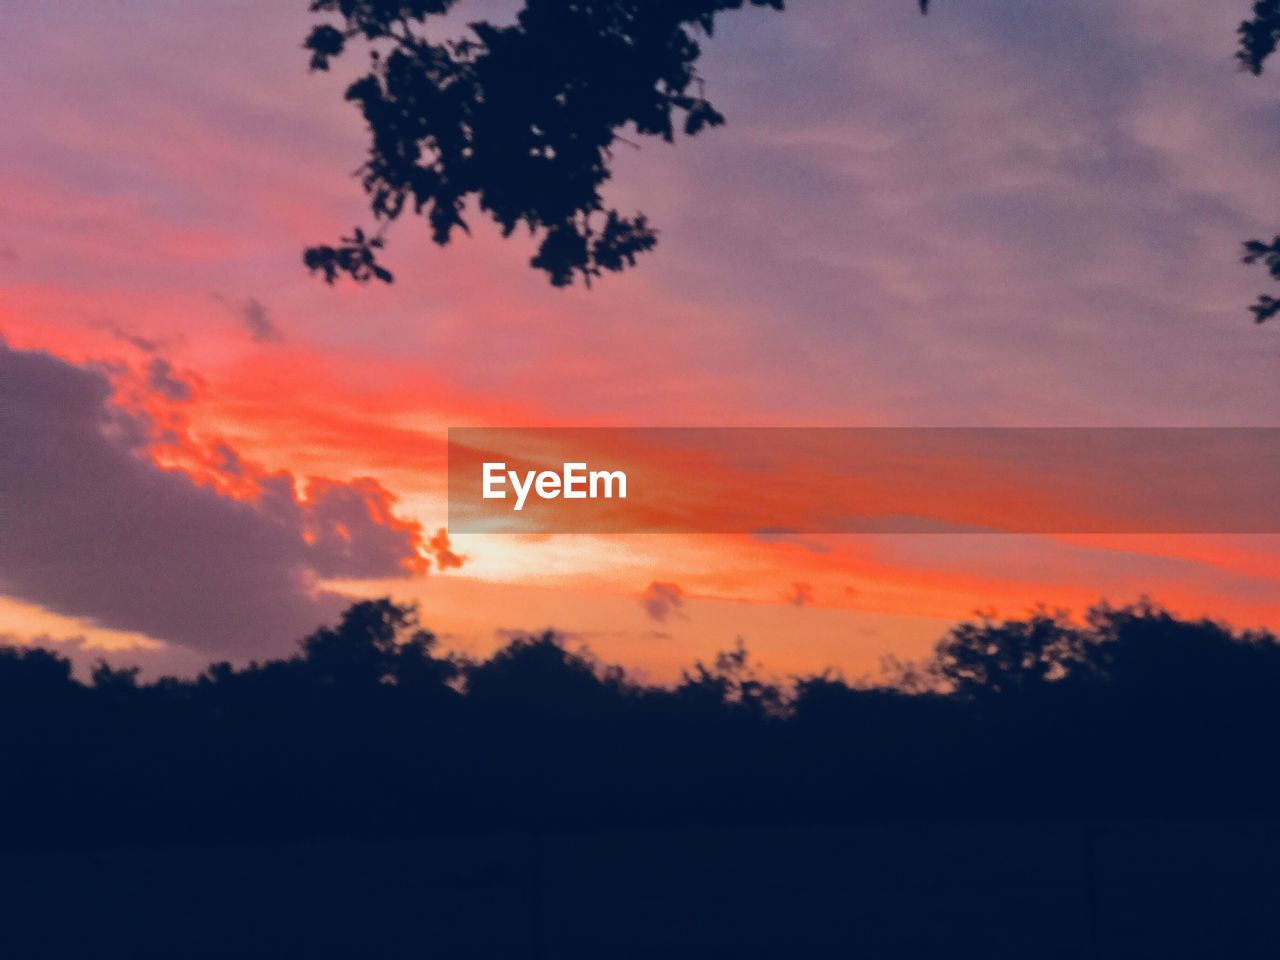 sunset, sky, beauty in nature, orange color, silhouette, tranquility, scenics - nature, tranquil scene, tree, cloud - sky, plant, nature, no people, idyllic, outdoors, environment, dramatic sky, growth, non-urban scene, landscape, romantic sky